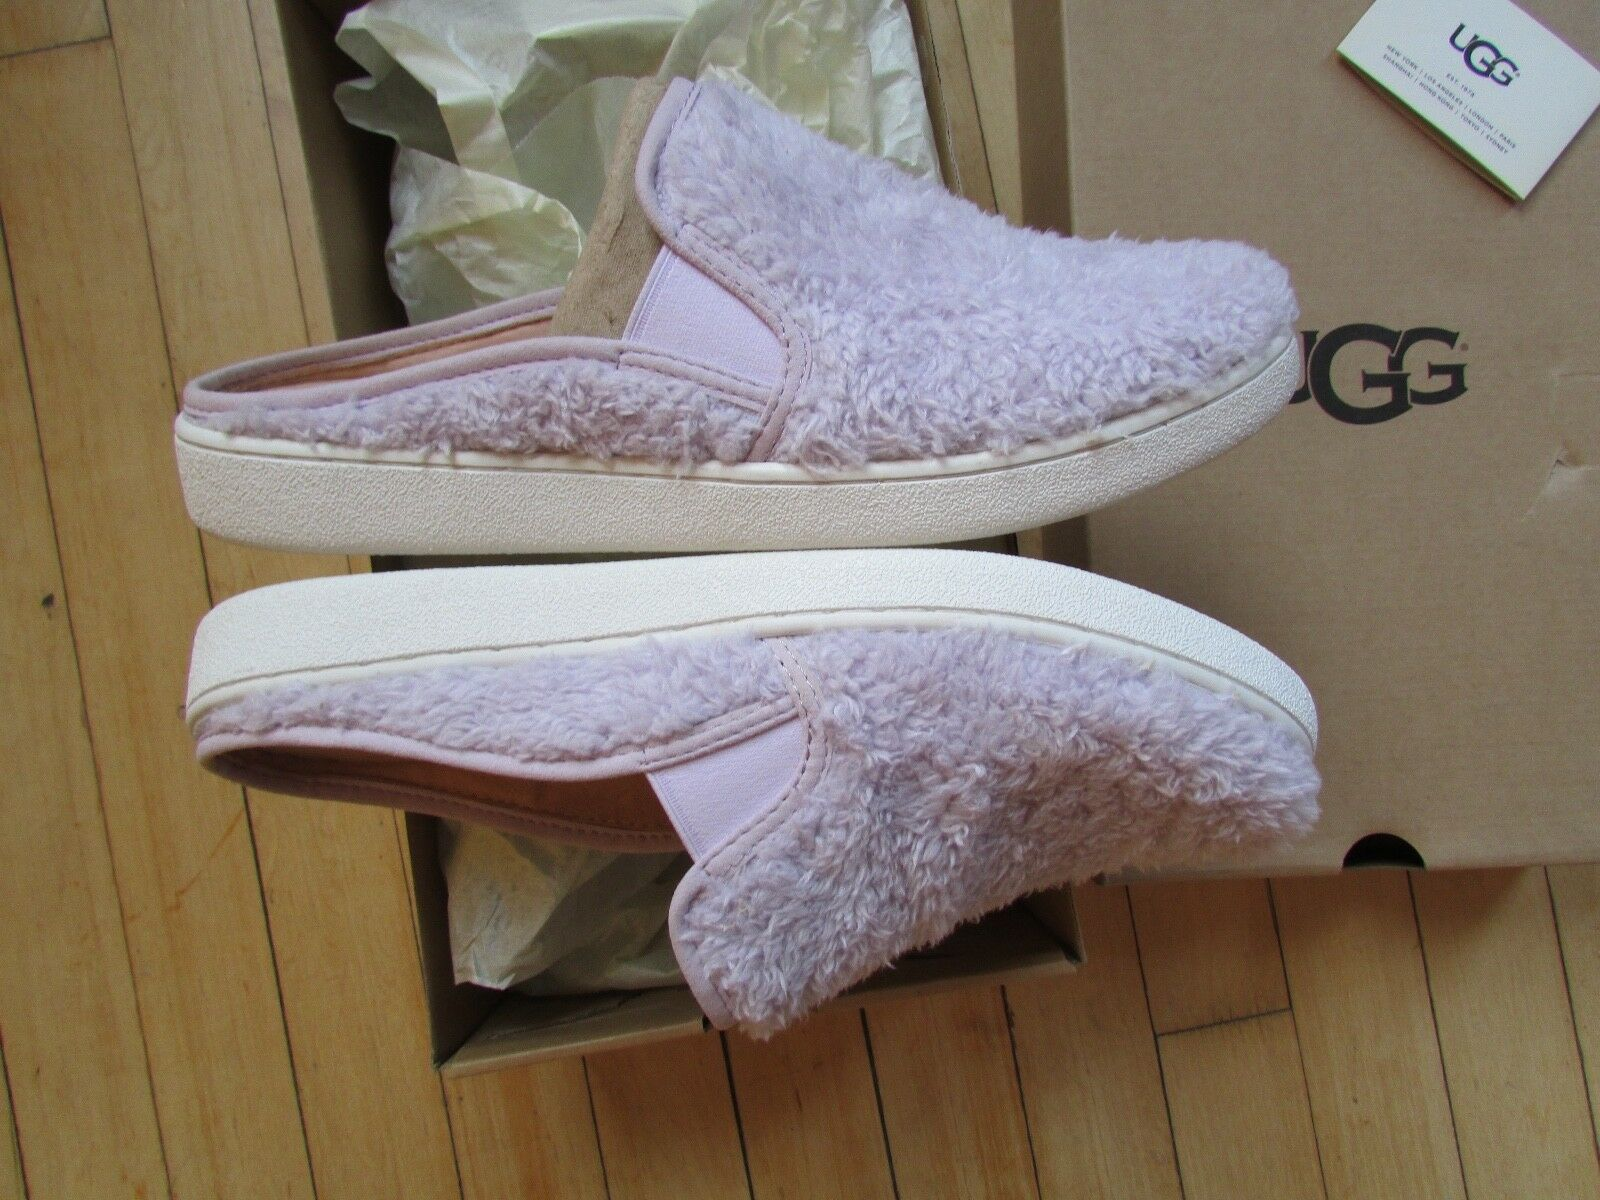 UGG Slippers Luci Slip On Sneakers Lavender fog Size 11 NEW image 2